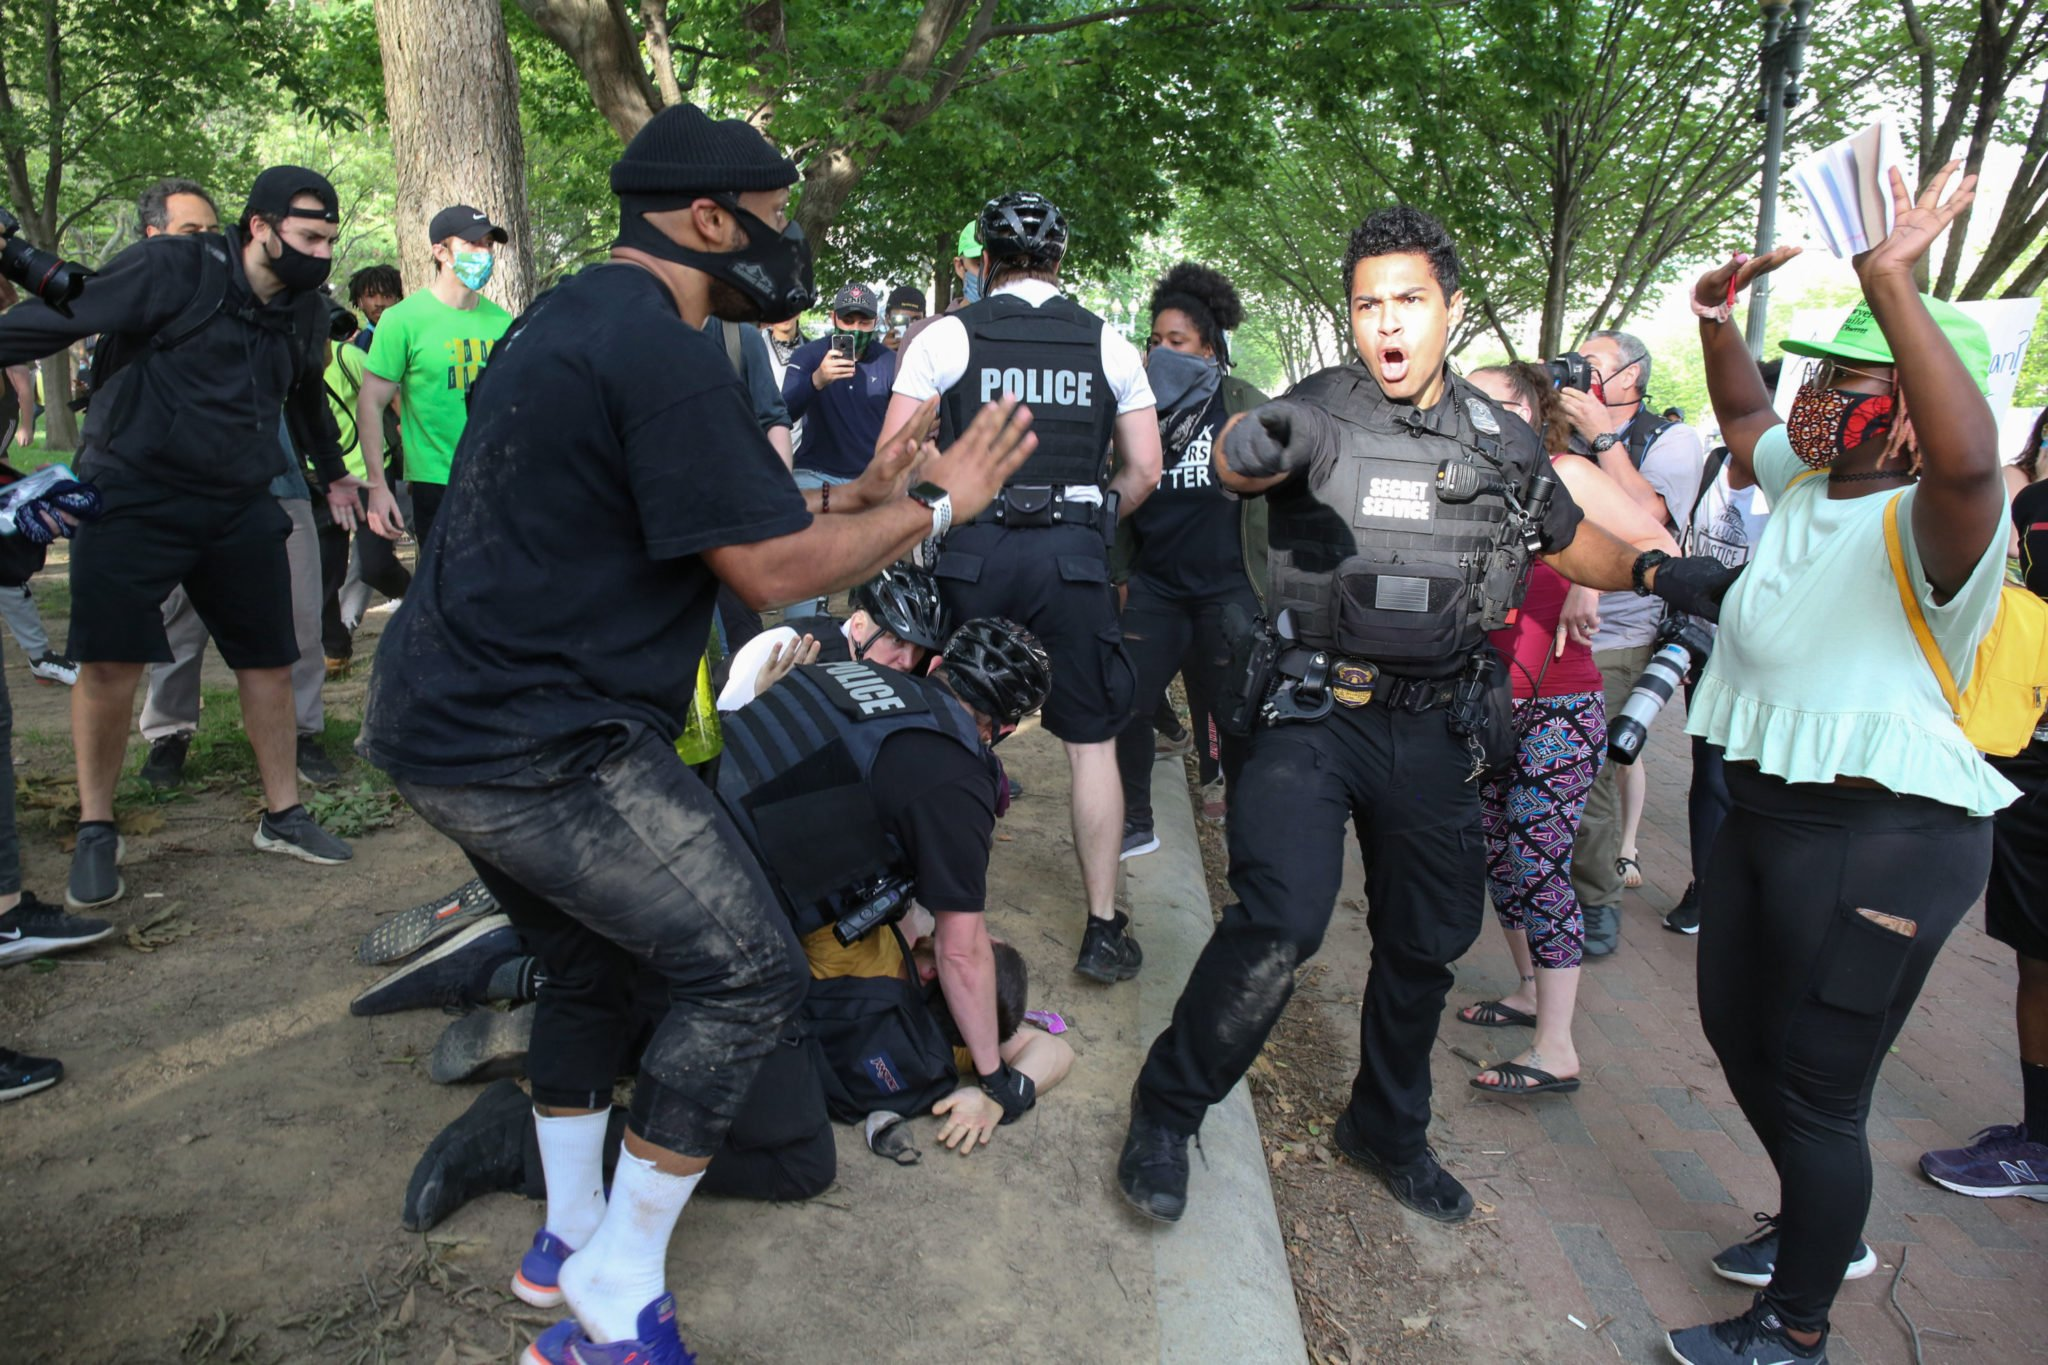 PHOTOS: Protests at the White House and Around DC After George Floyd's Death